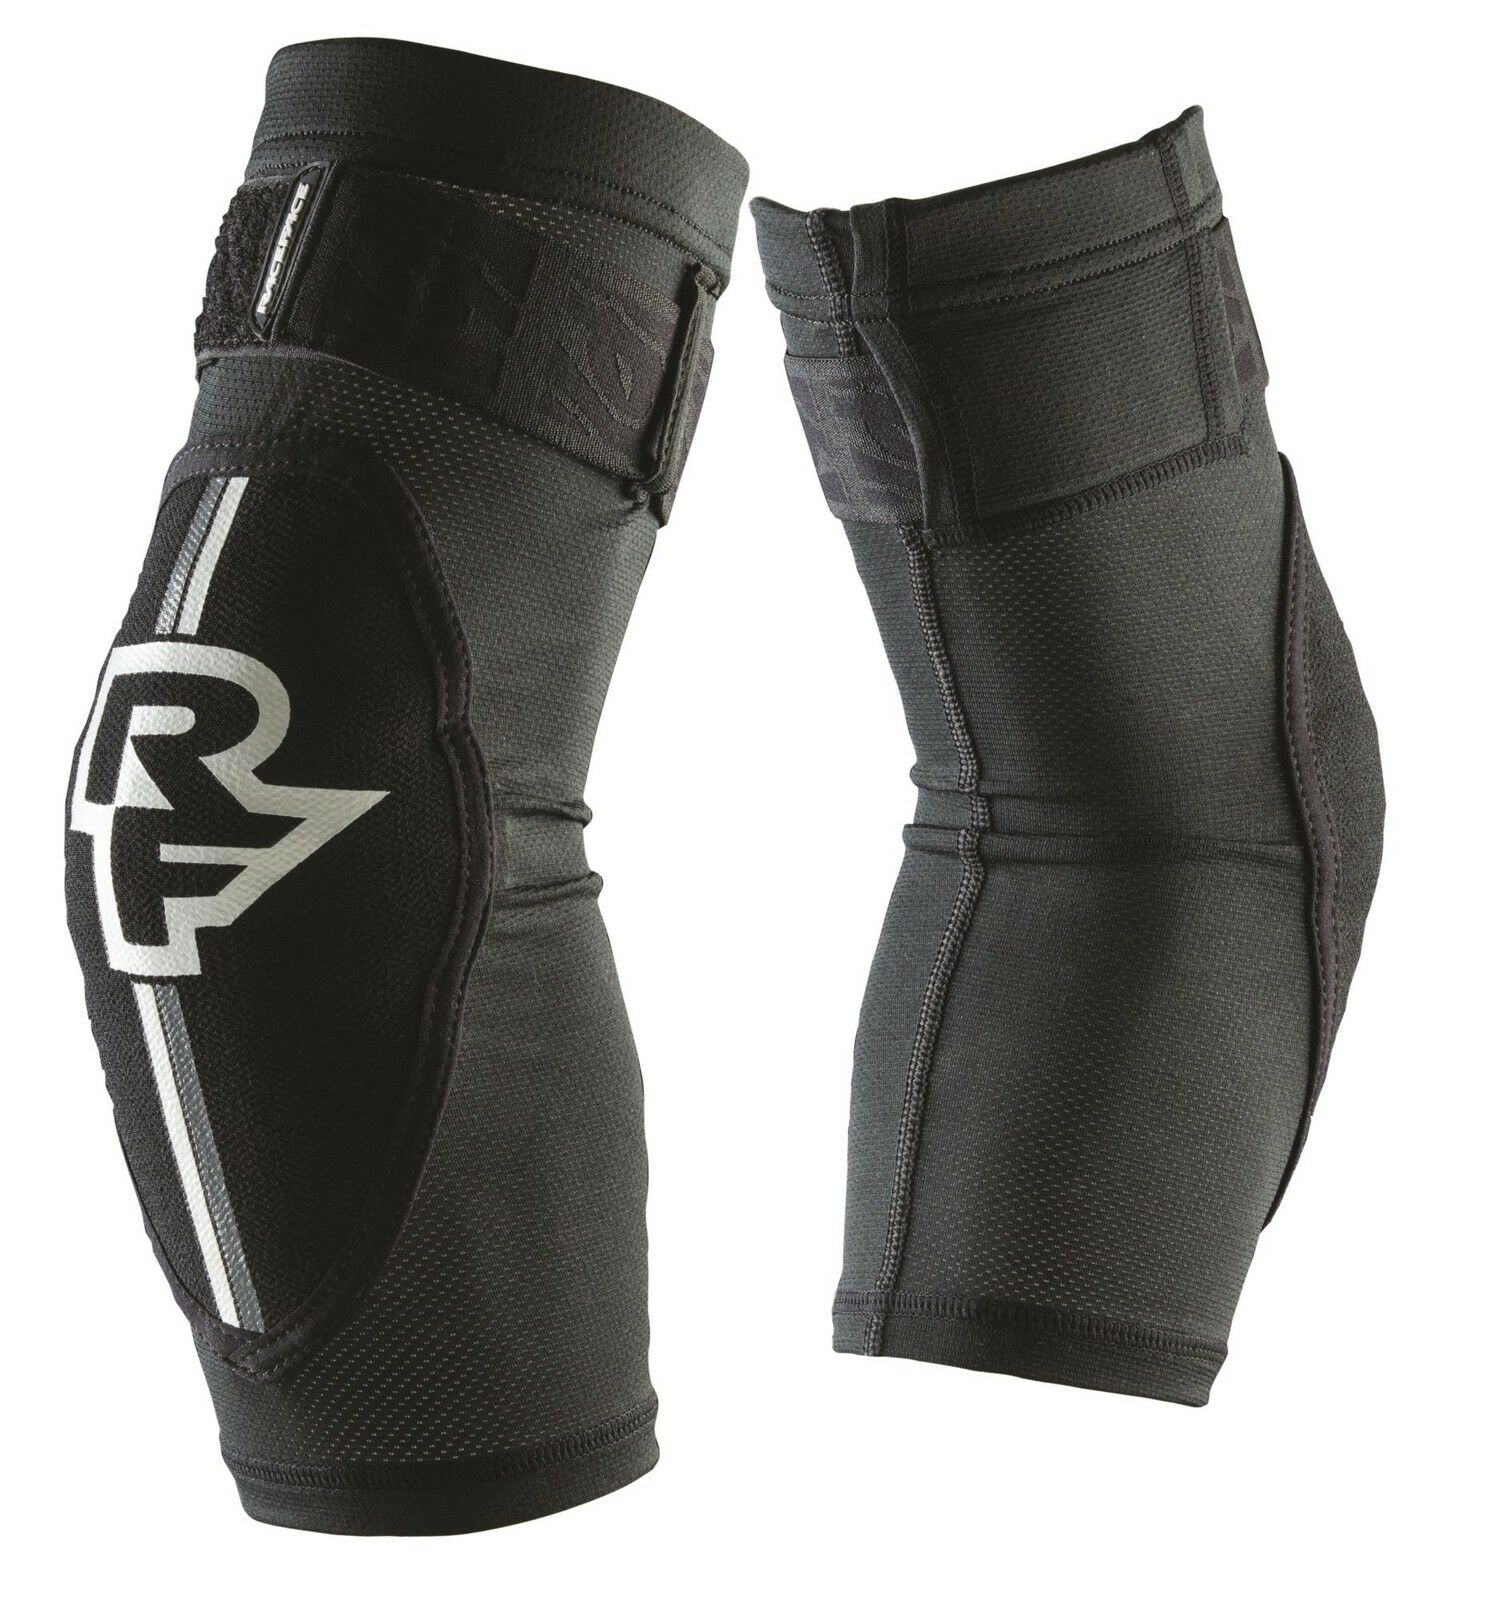 Race Face Indy D30 - Elbow  Guards  professional integrated online shopping mall